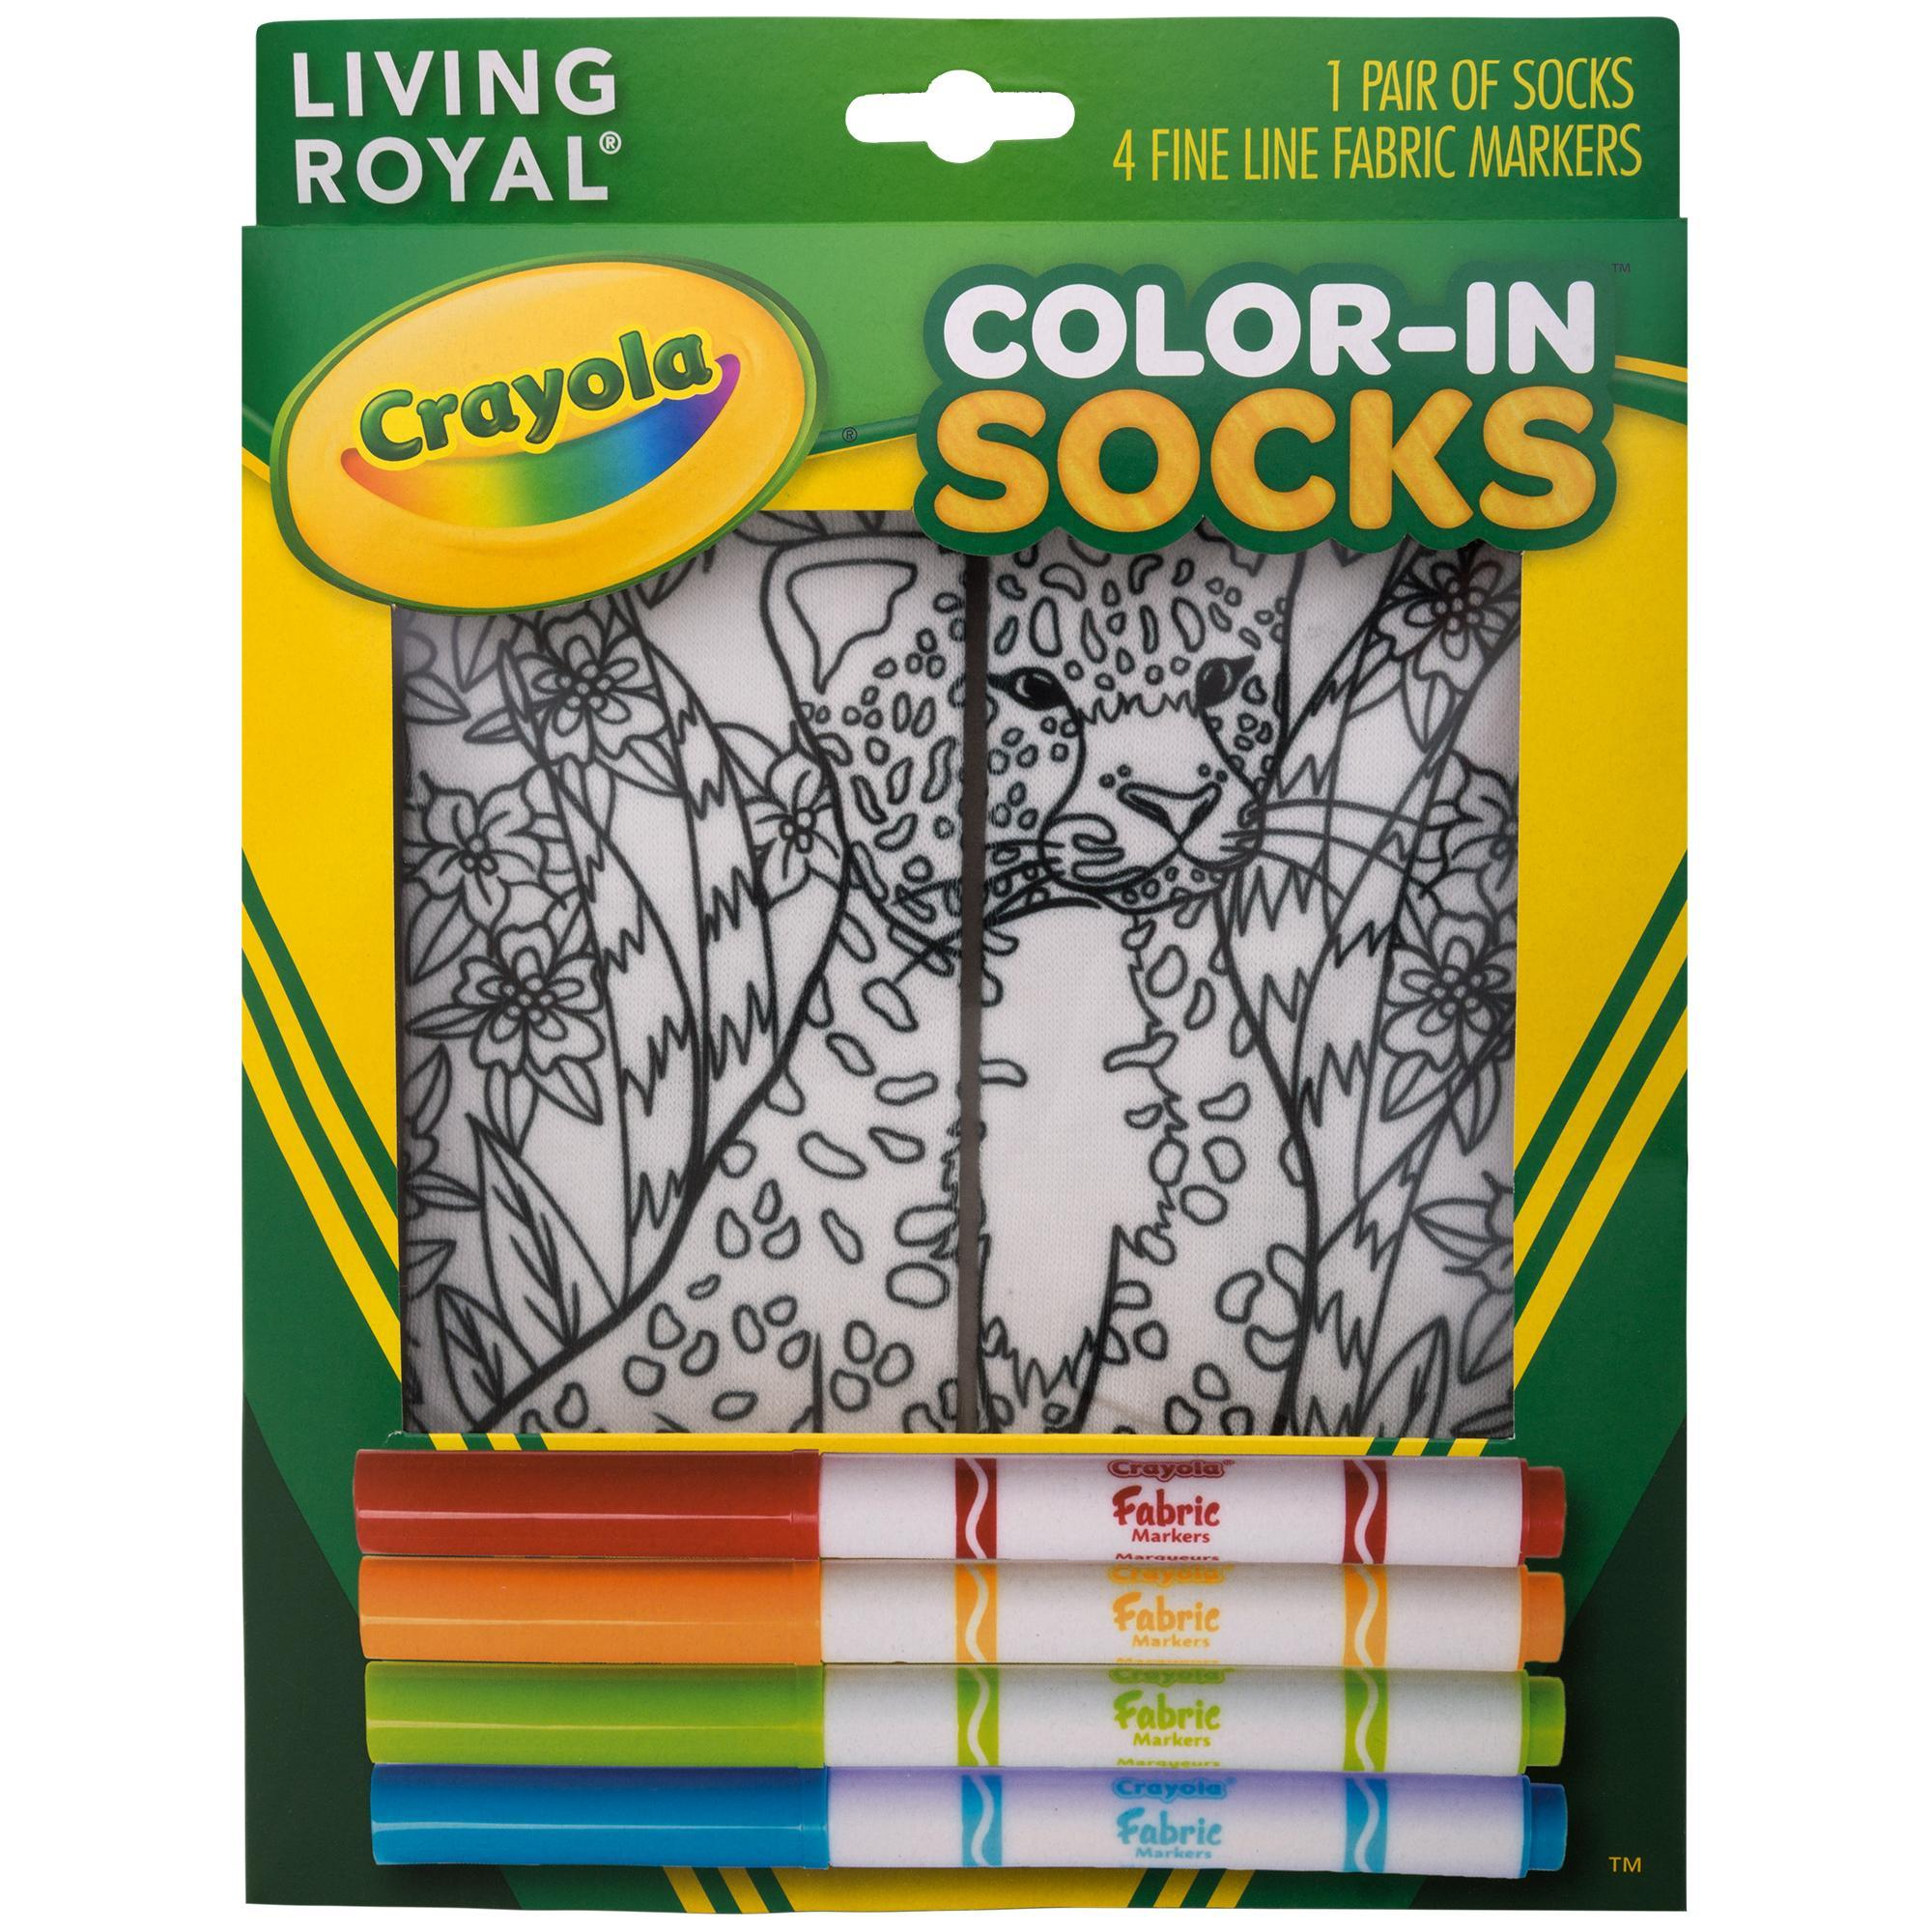 crayola fabric markers instructions